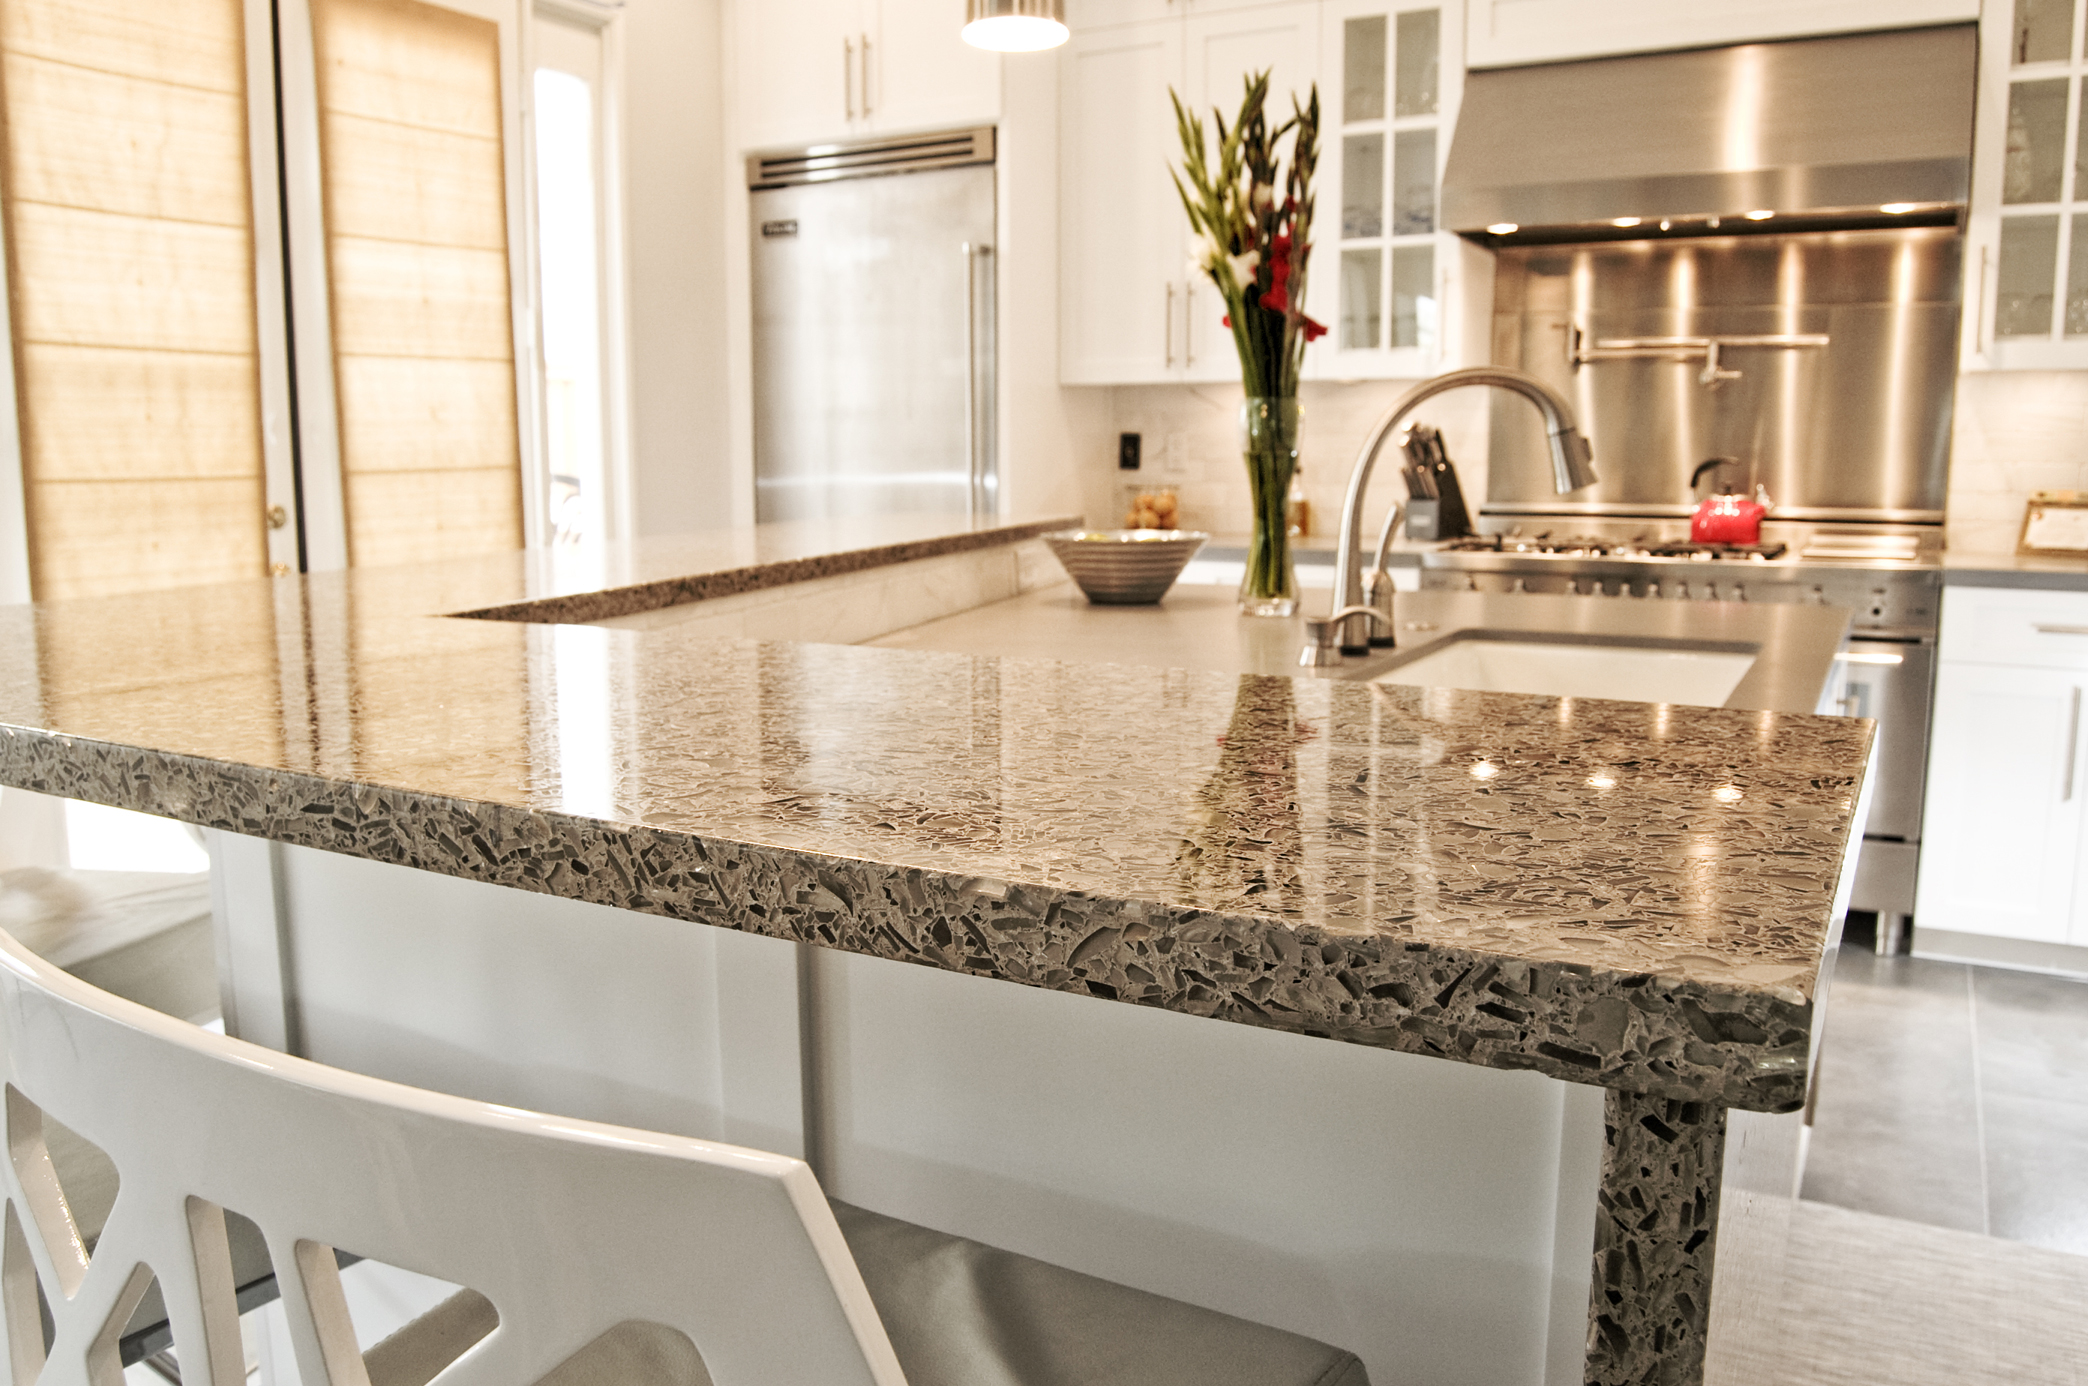 strength depot gives countertops counter lowes bay and hampton home block quartz butchers recycled top countertop your style rigidity cabinets shaker kitchen butcher reclaimed glass